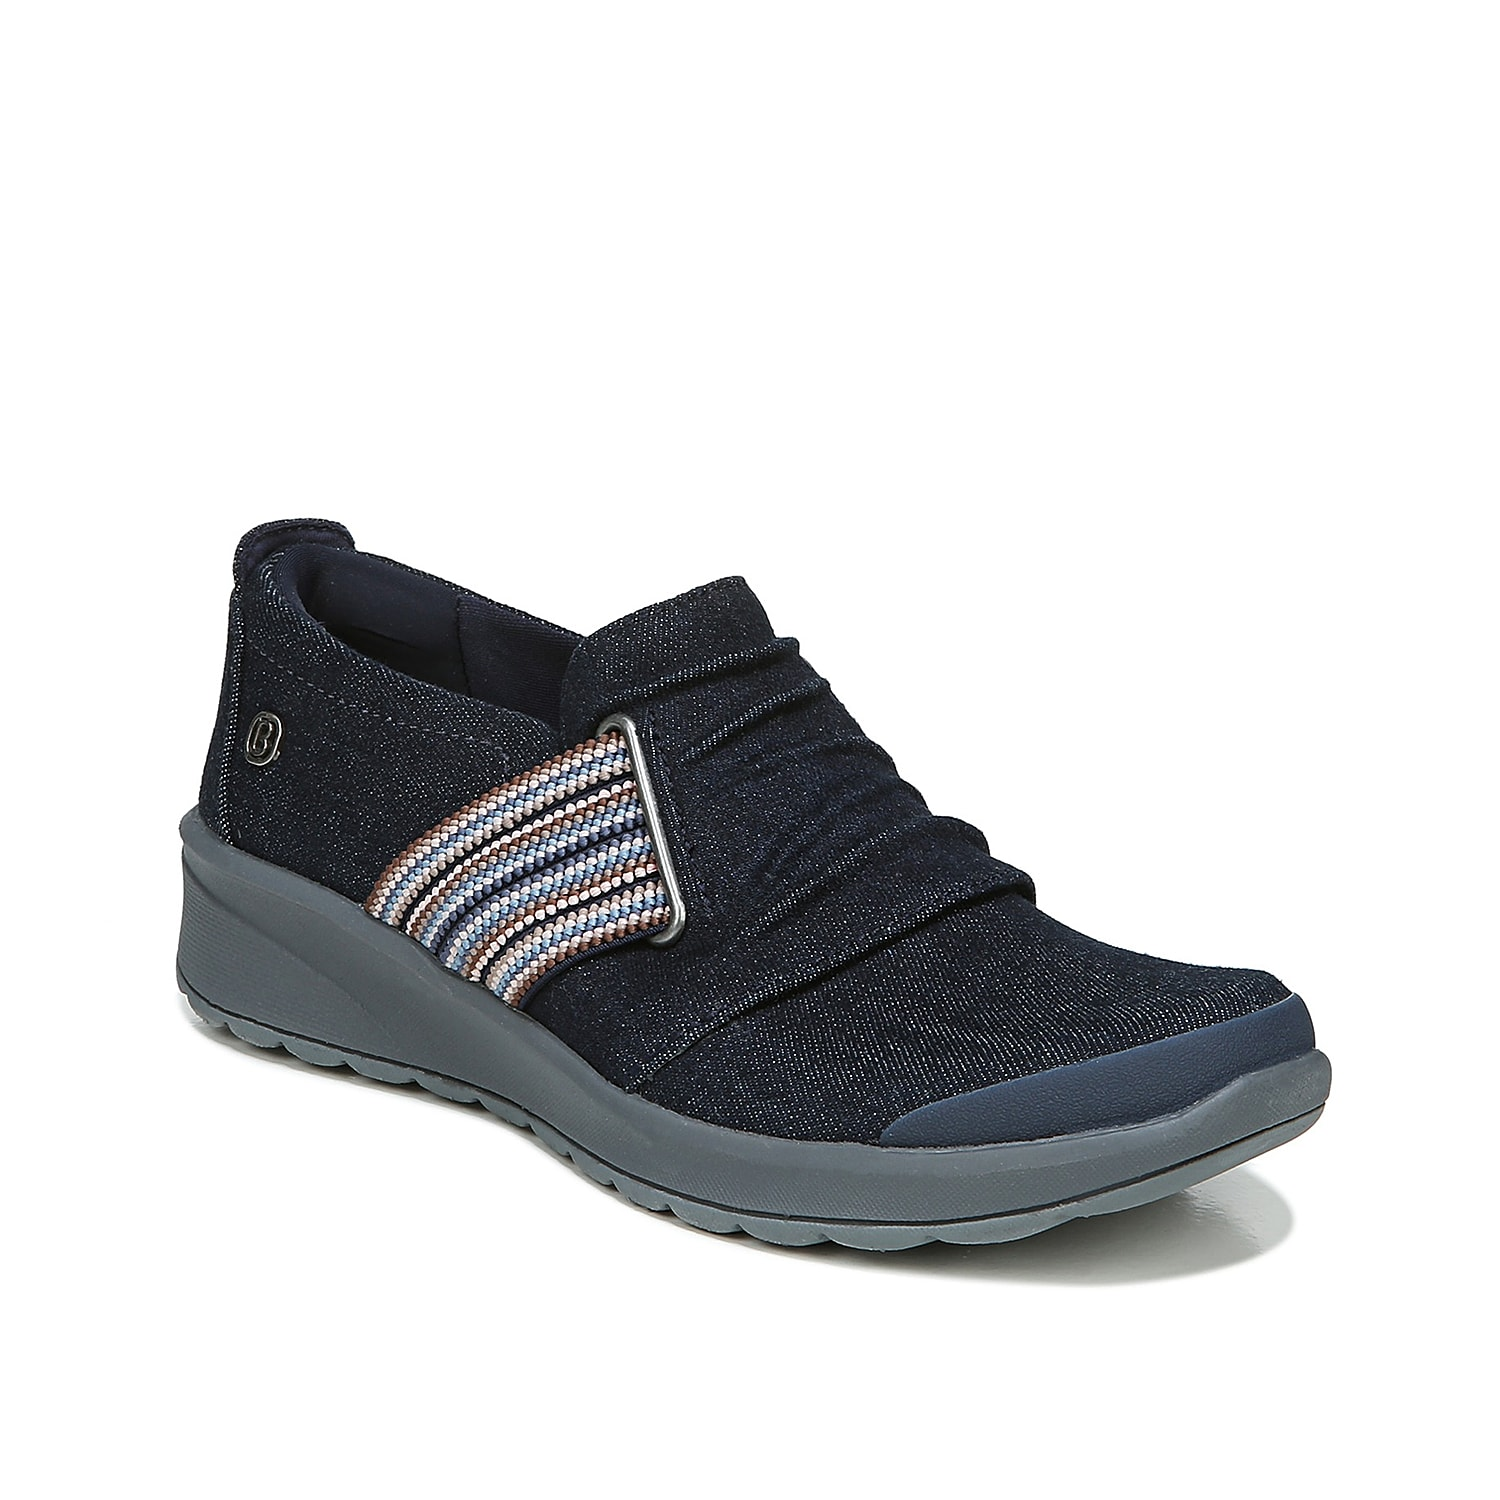 Perfect your casual look with the Giddy Up slip-on from BZees. This sneaker features SuperPuff cushion around your ankle, SoCush Memory Foam arch support and Comfort Cone Gel that bring total comfort to your foot.